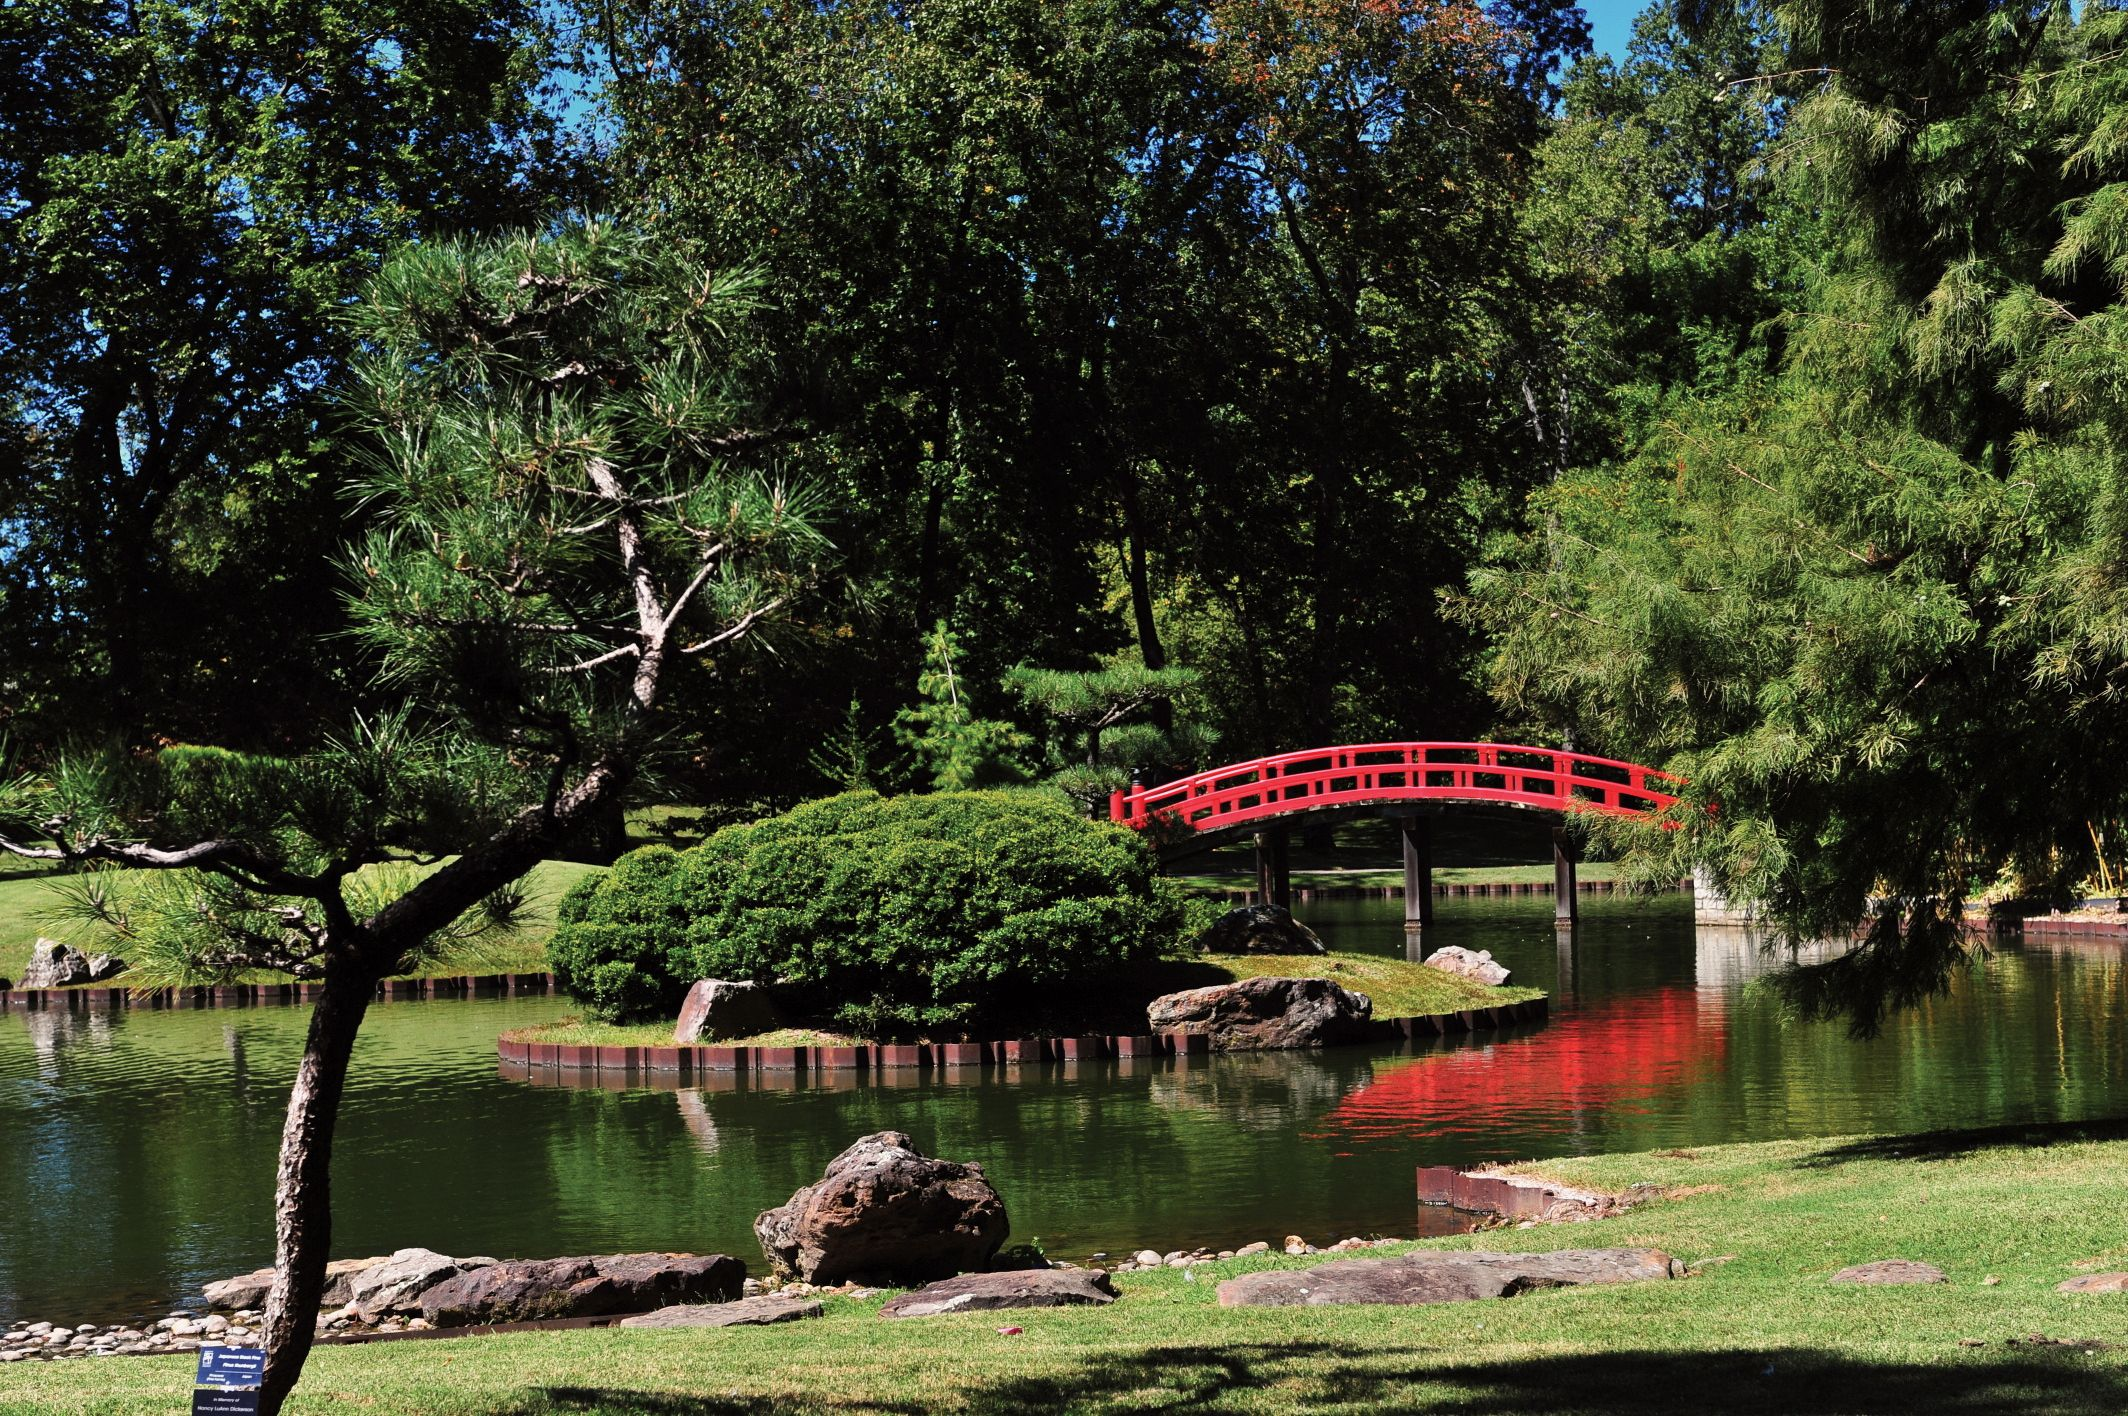 Charmant Japanese Garden At The Memphis Botanic Garden Where I Visited Frequently As  A Child. I